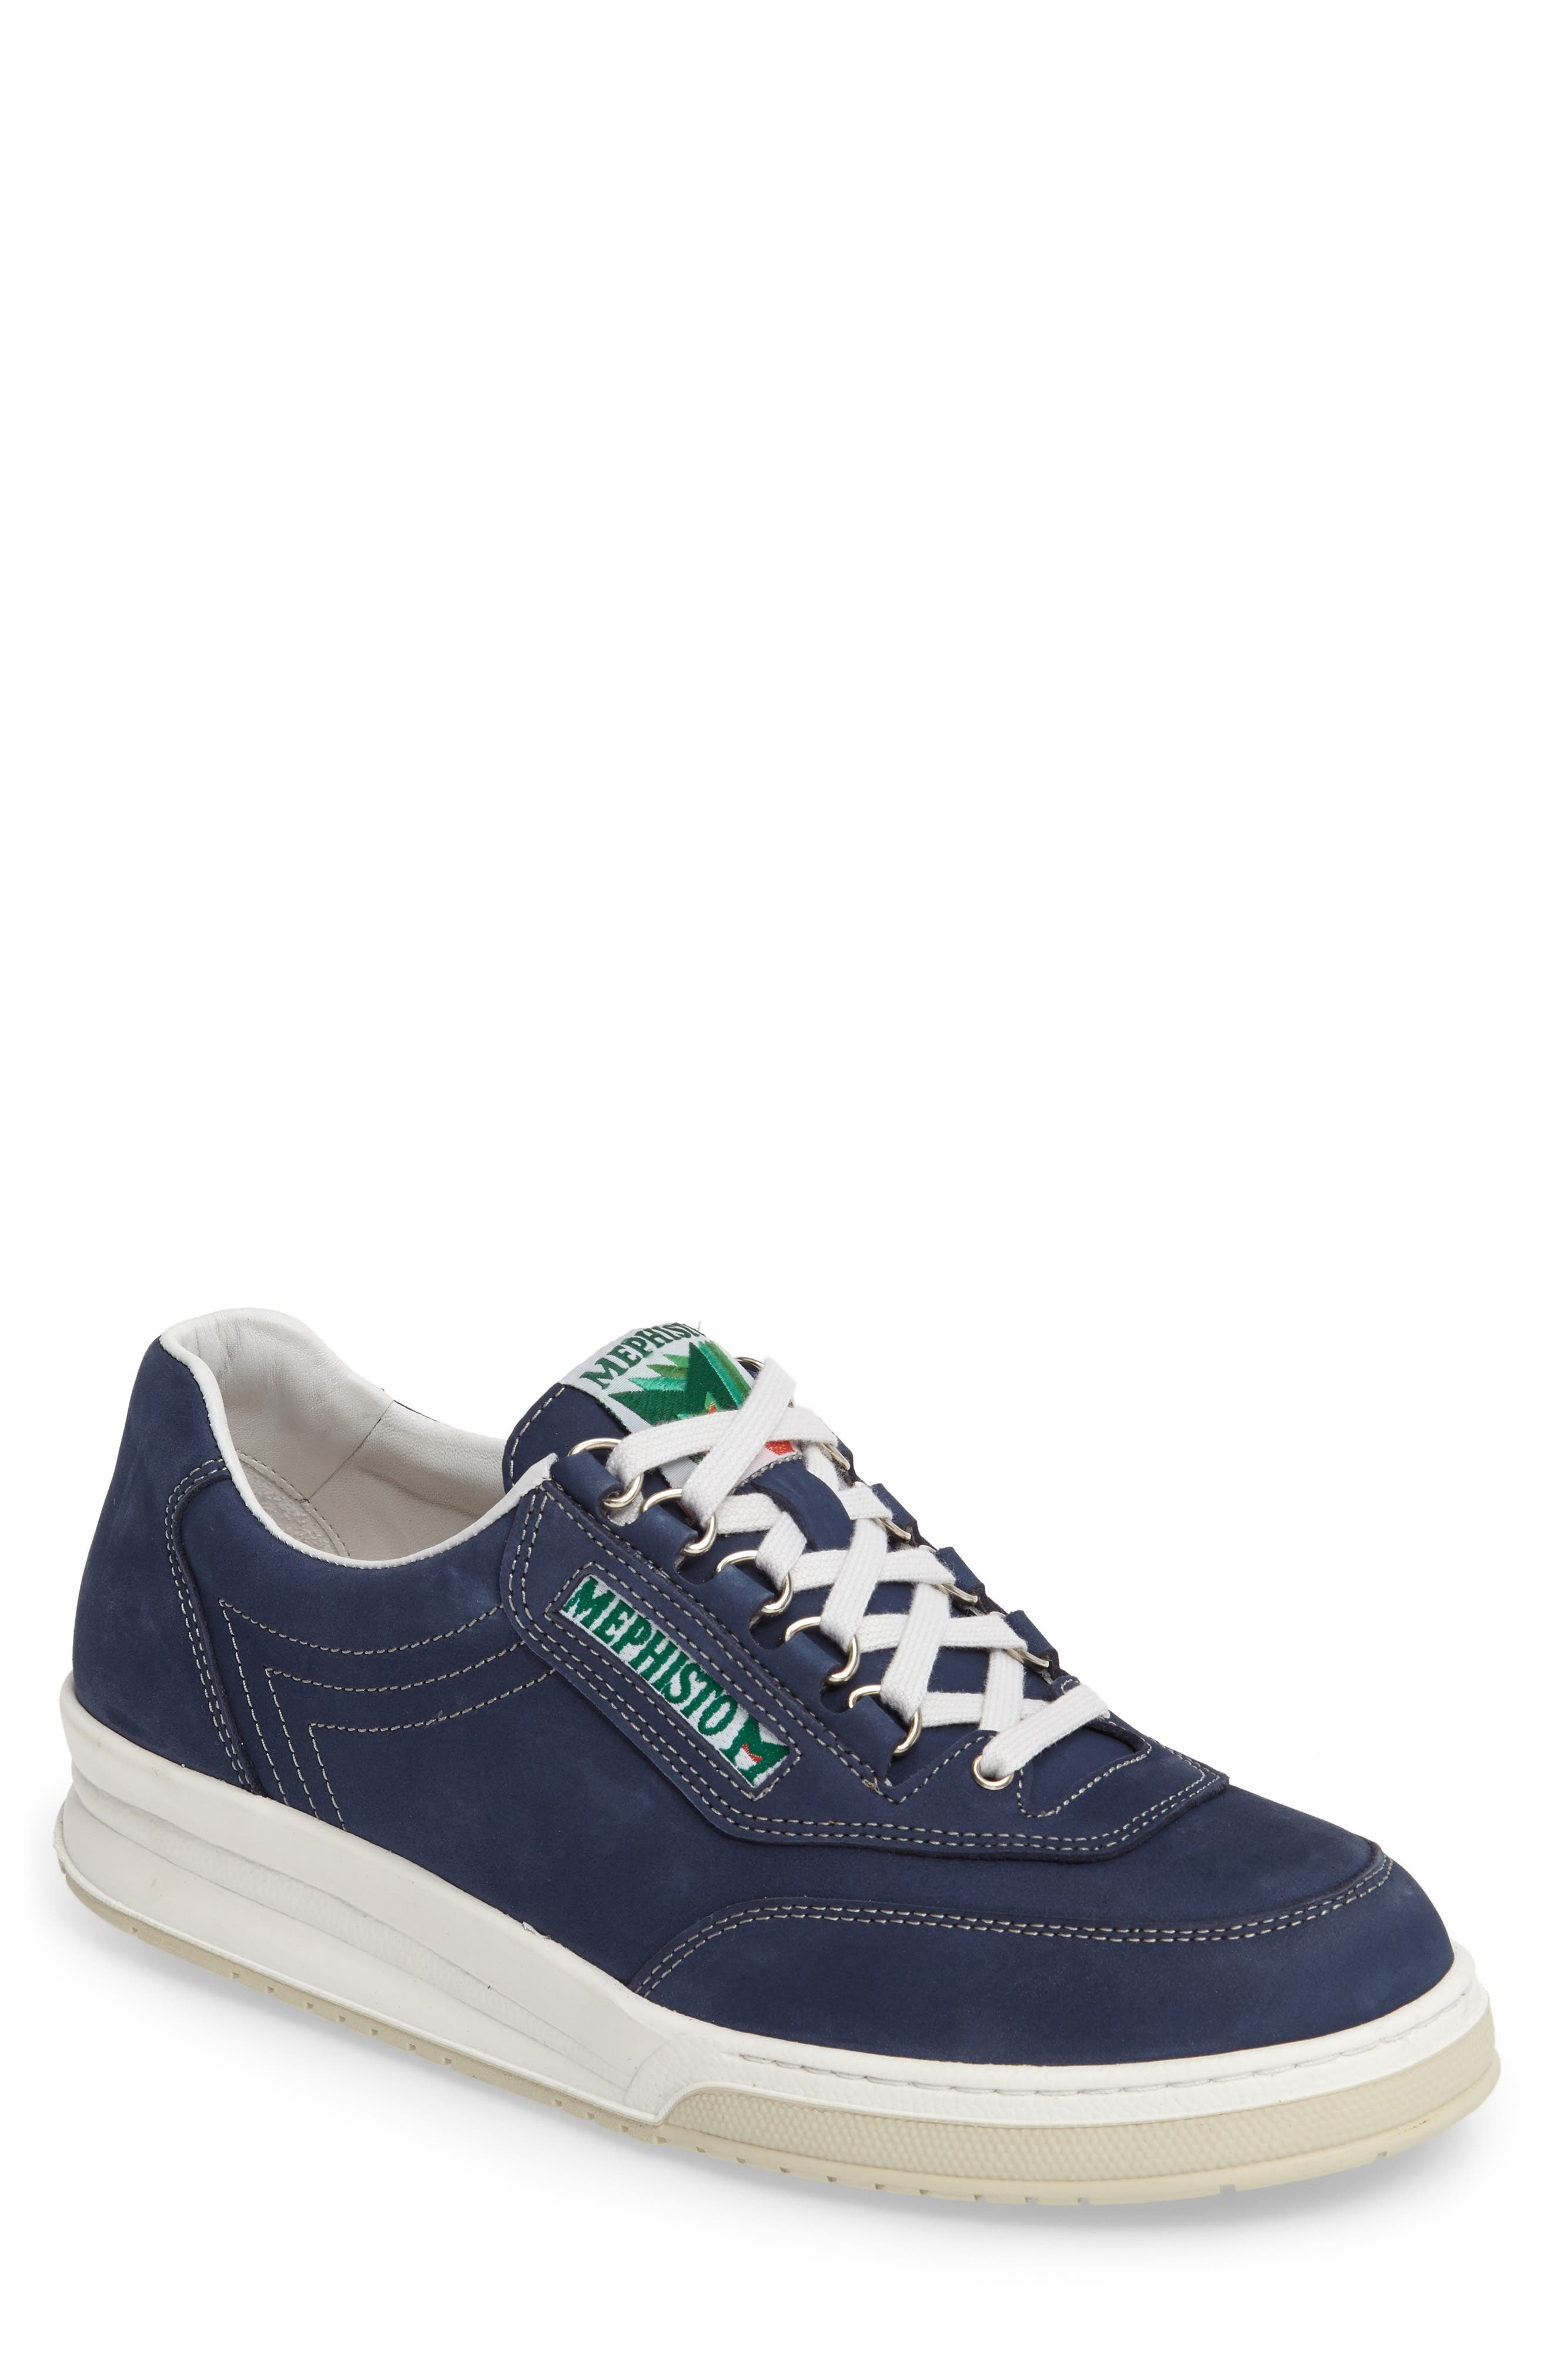 Alternate Image 1 Selected - Mephisto 'Match' Walking Shoe (Men)